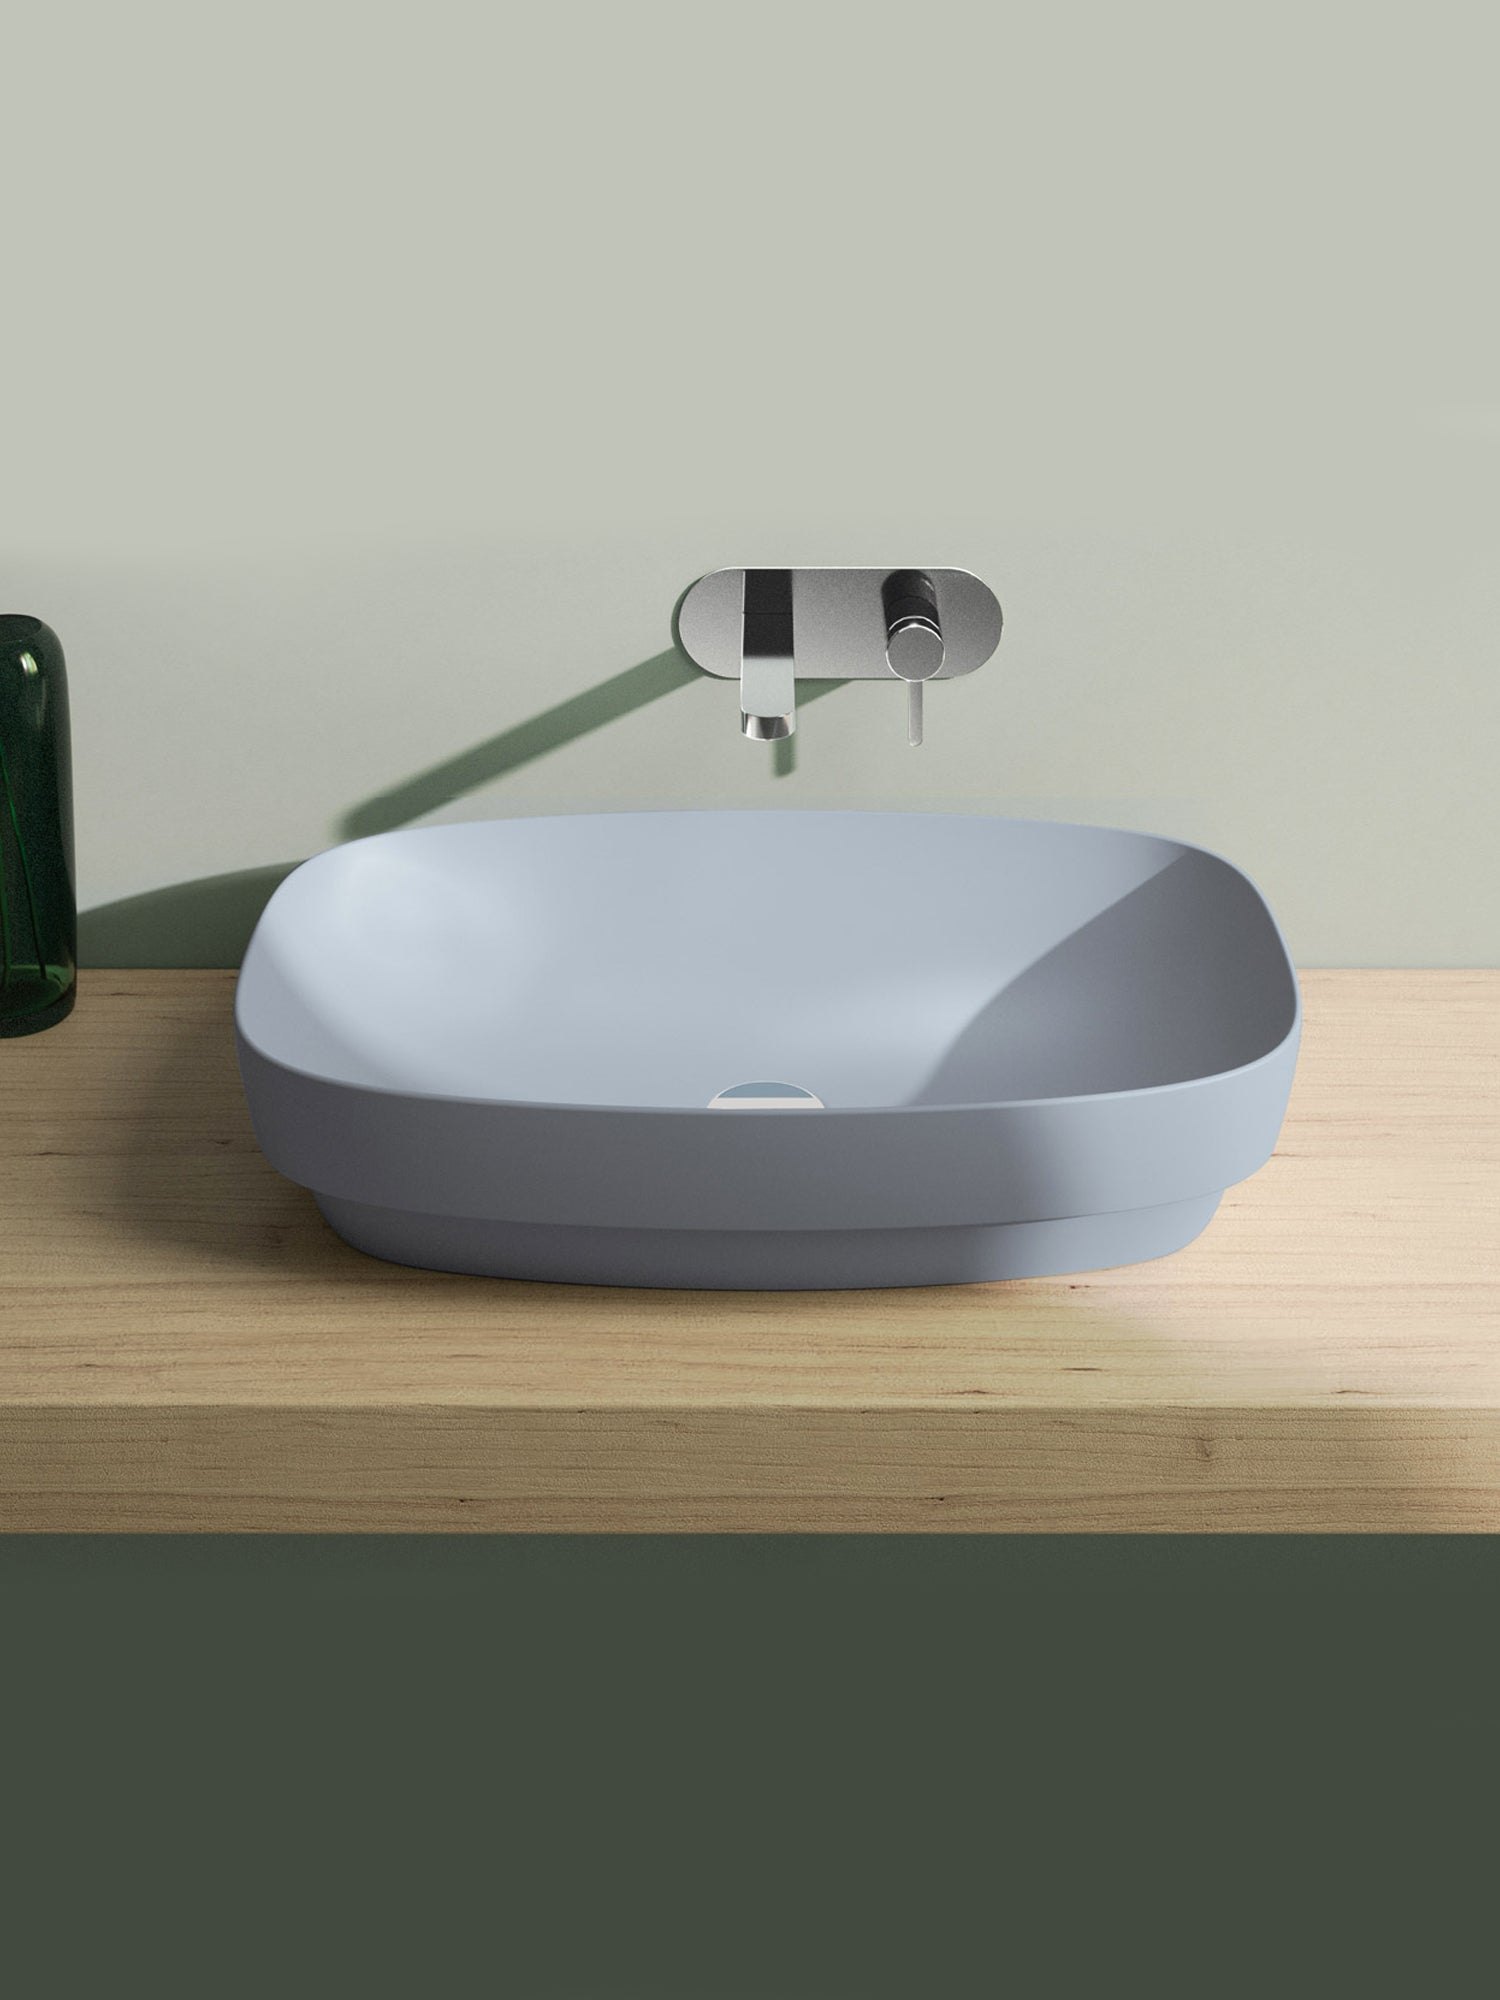 Green Lux Cement Matt Countertop Basin #65AGRLXCS